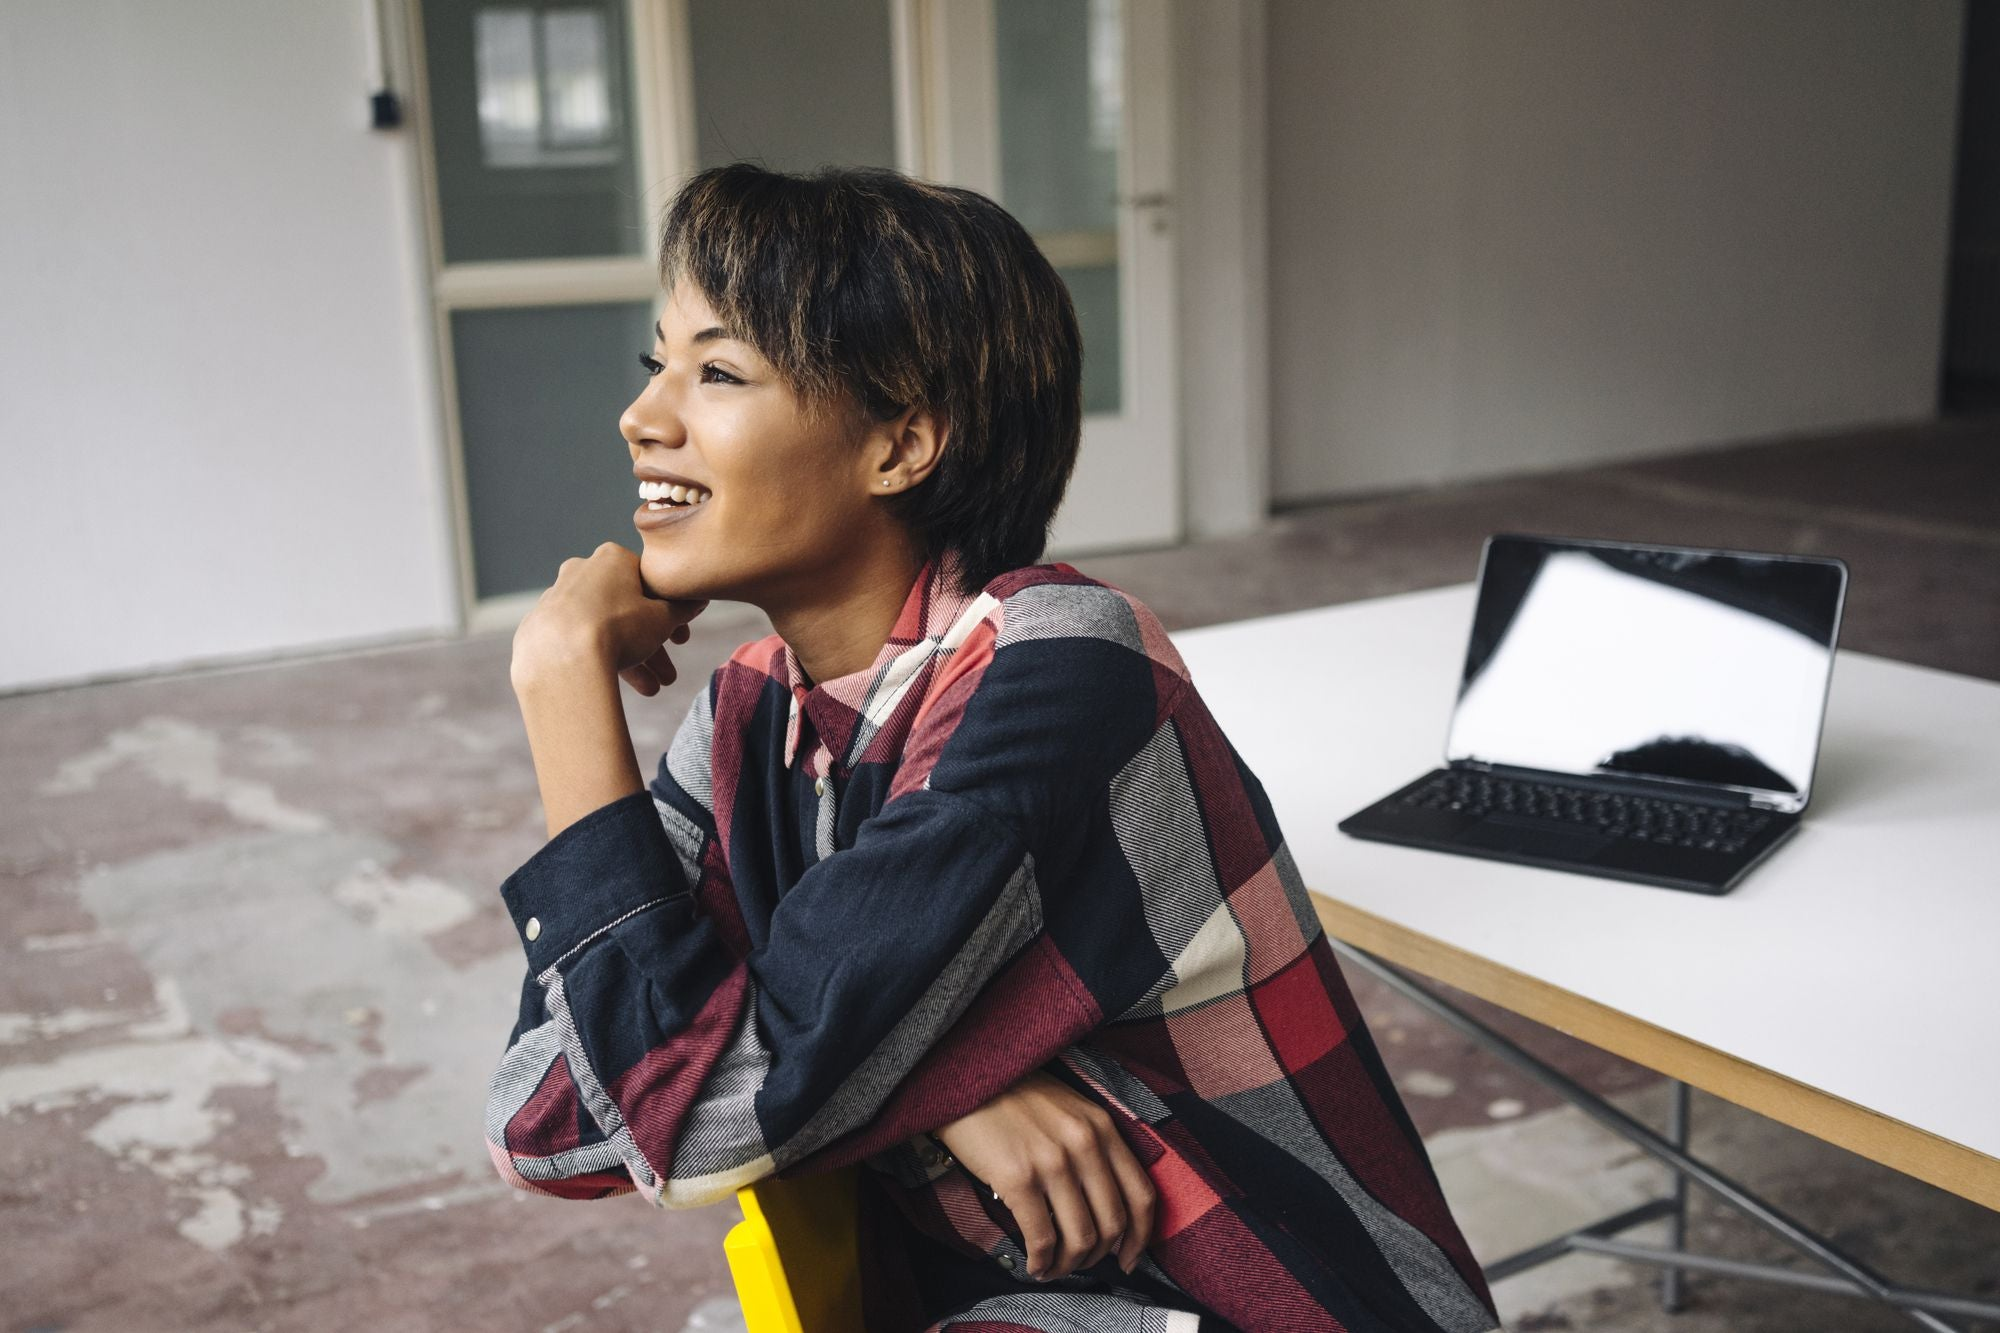 4 Tips to Take your Side Hustle to the Next Level